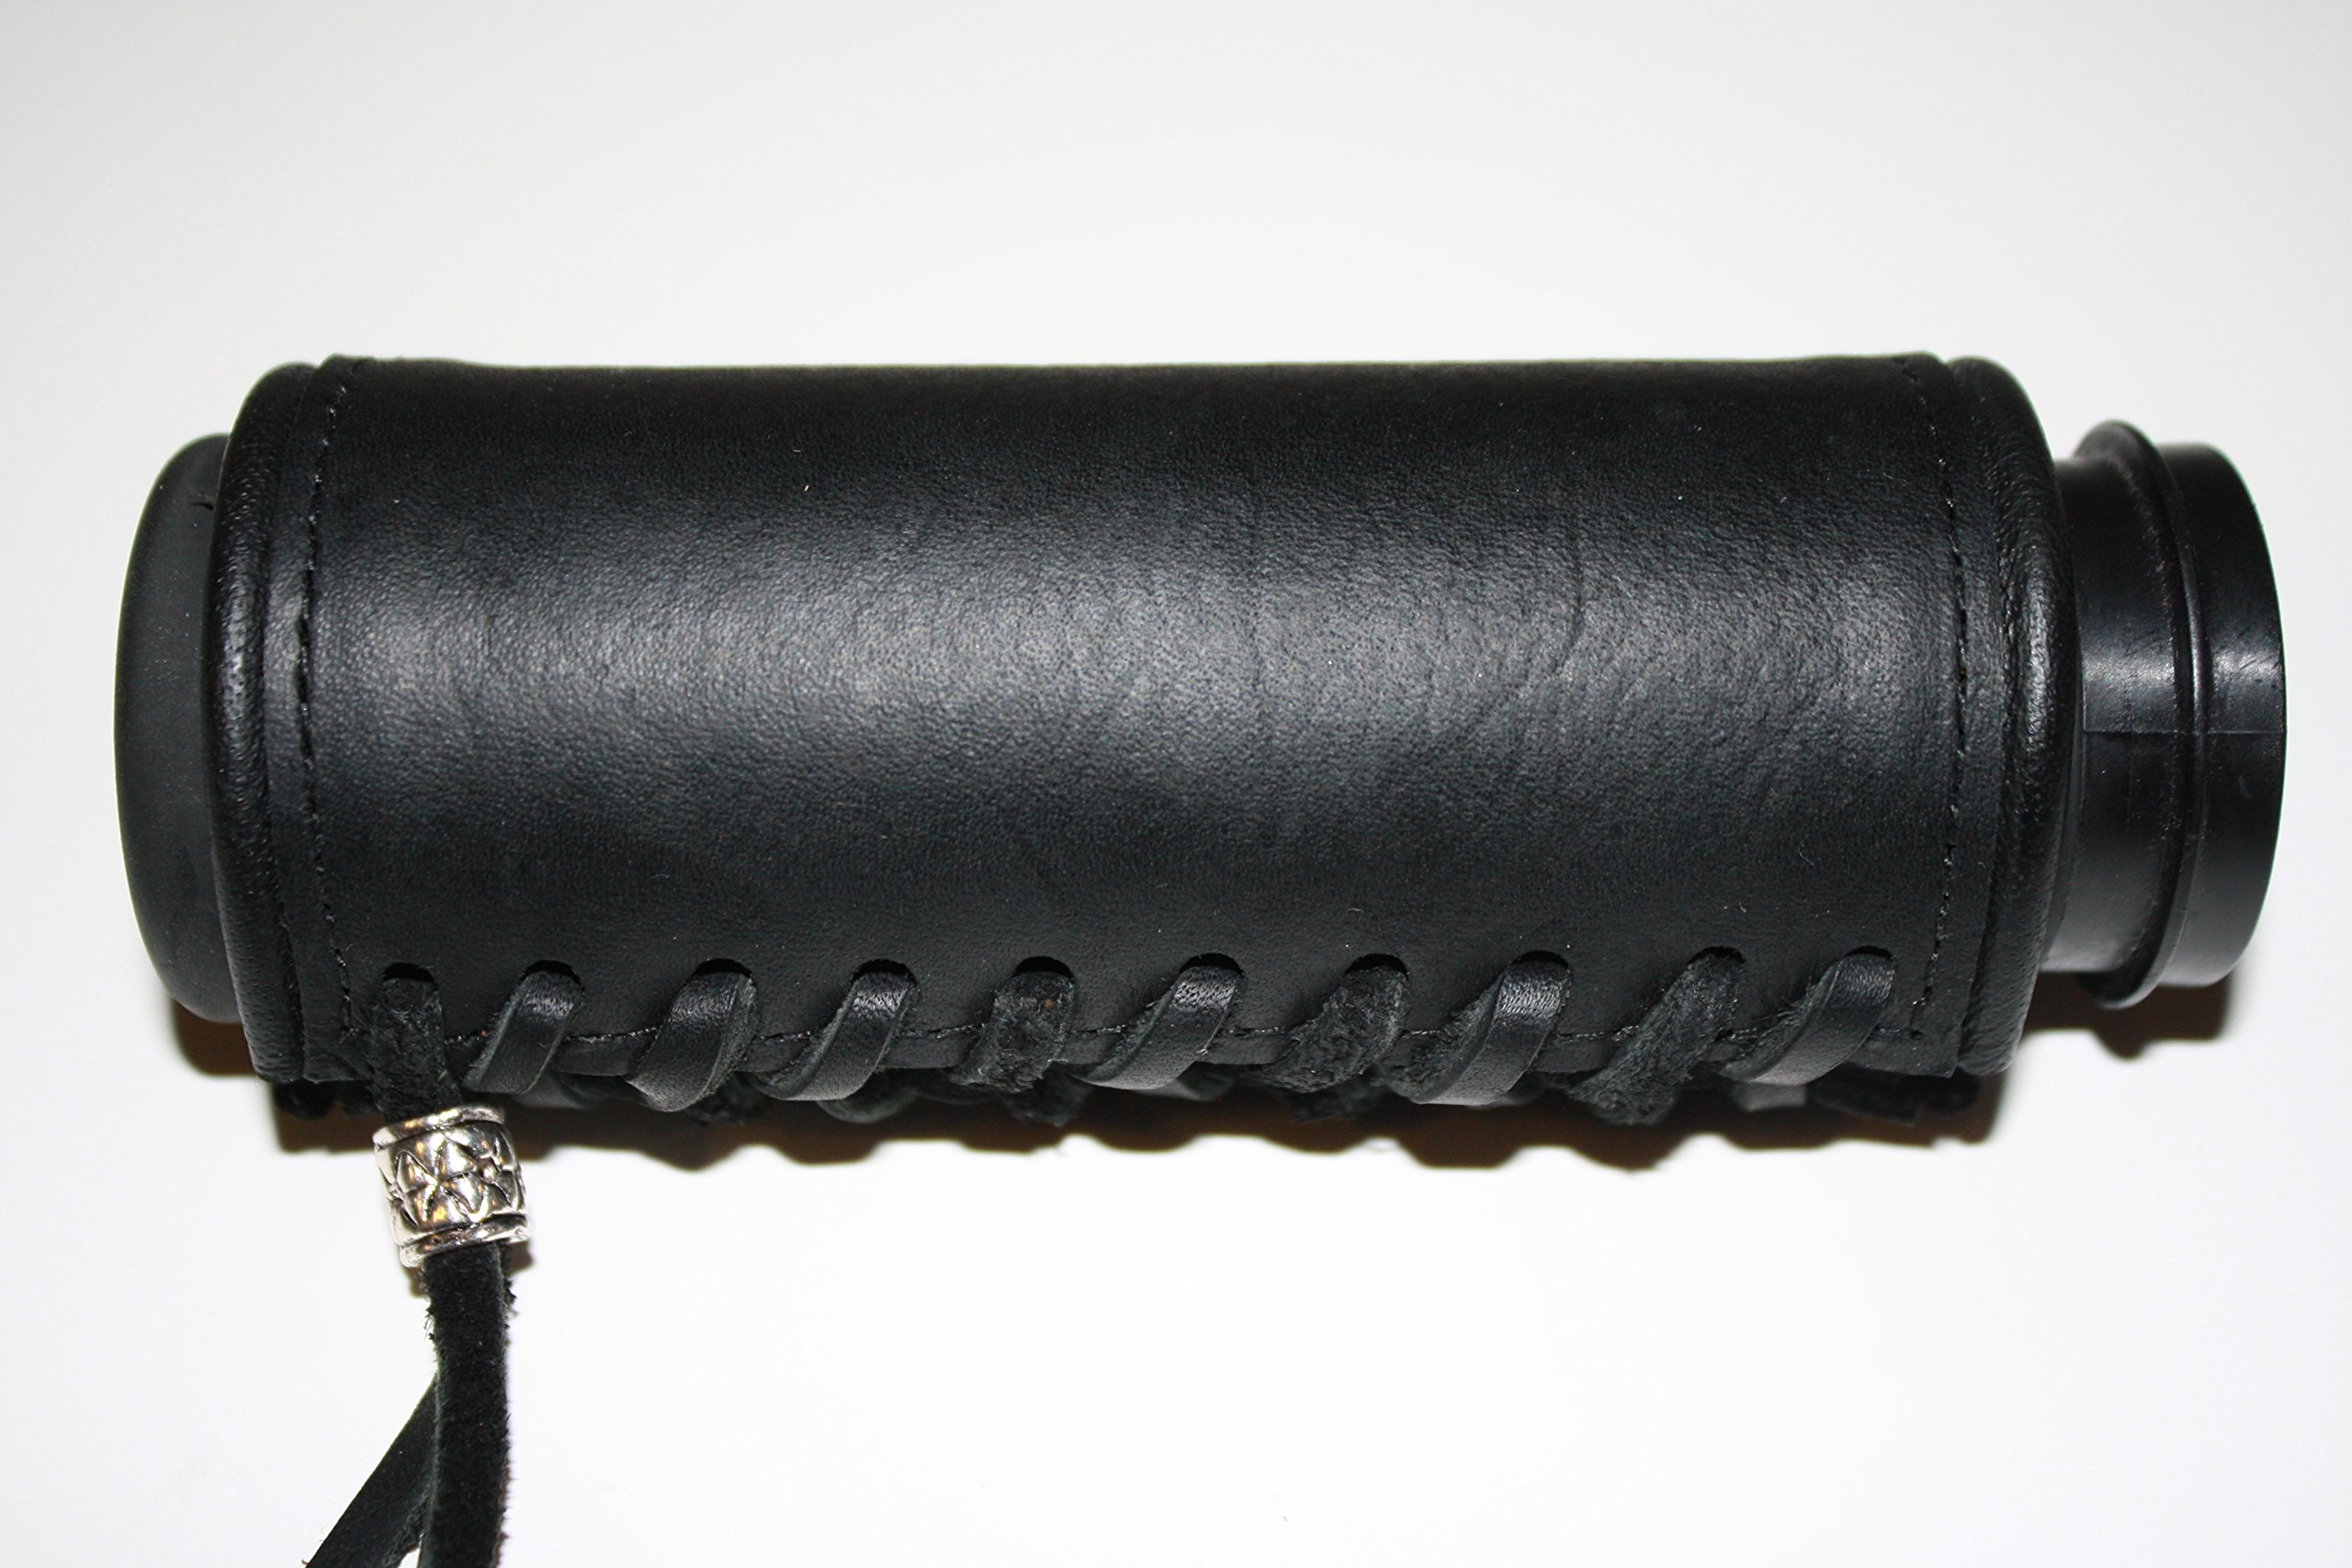 Deluxe Leather Black Padded Vibration Dampening Leather Motorcycle Grip Covers for Hd Motorcycles